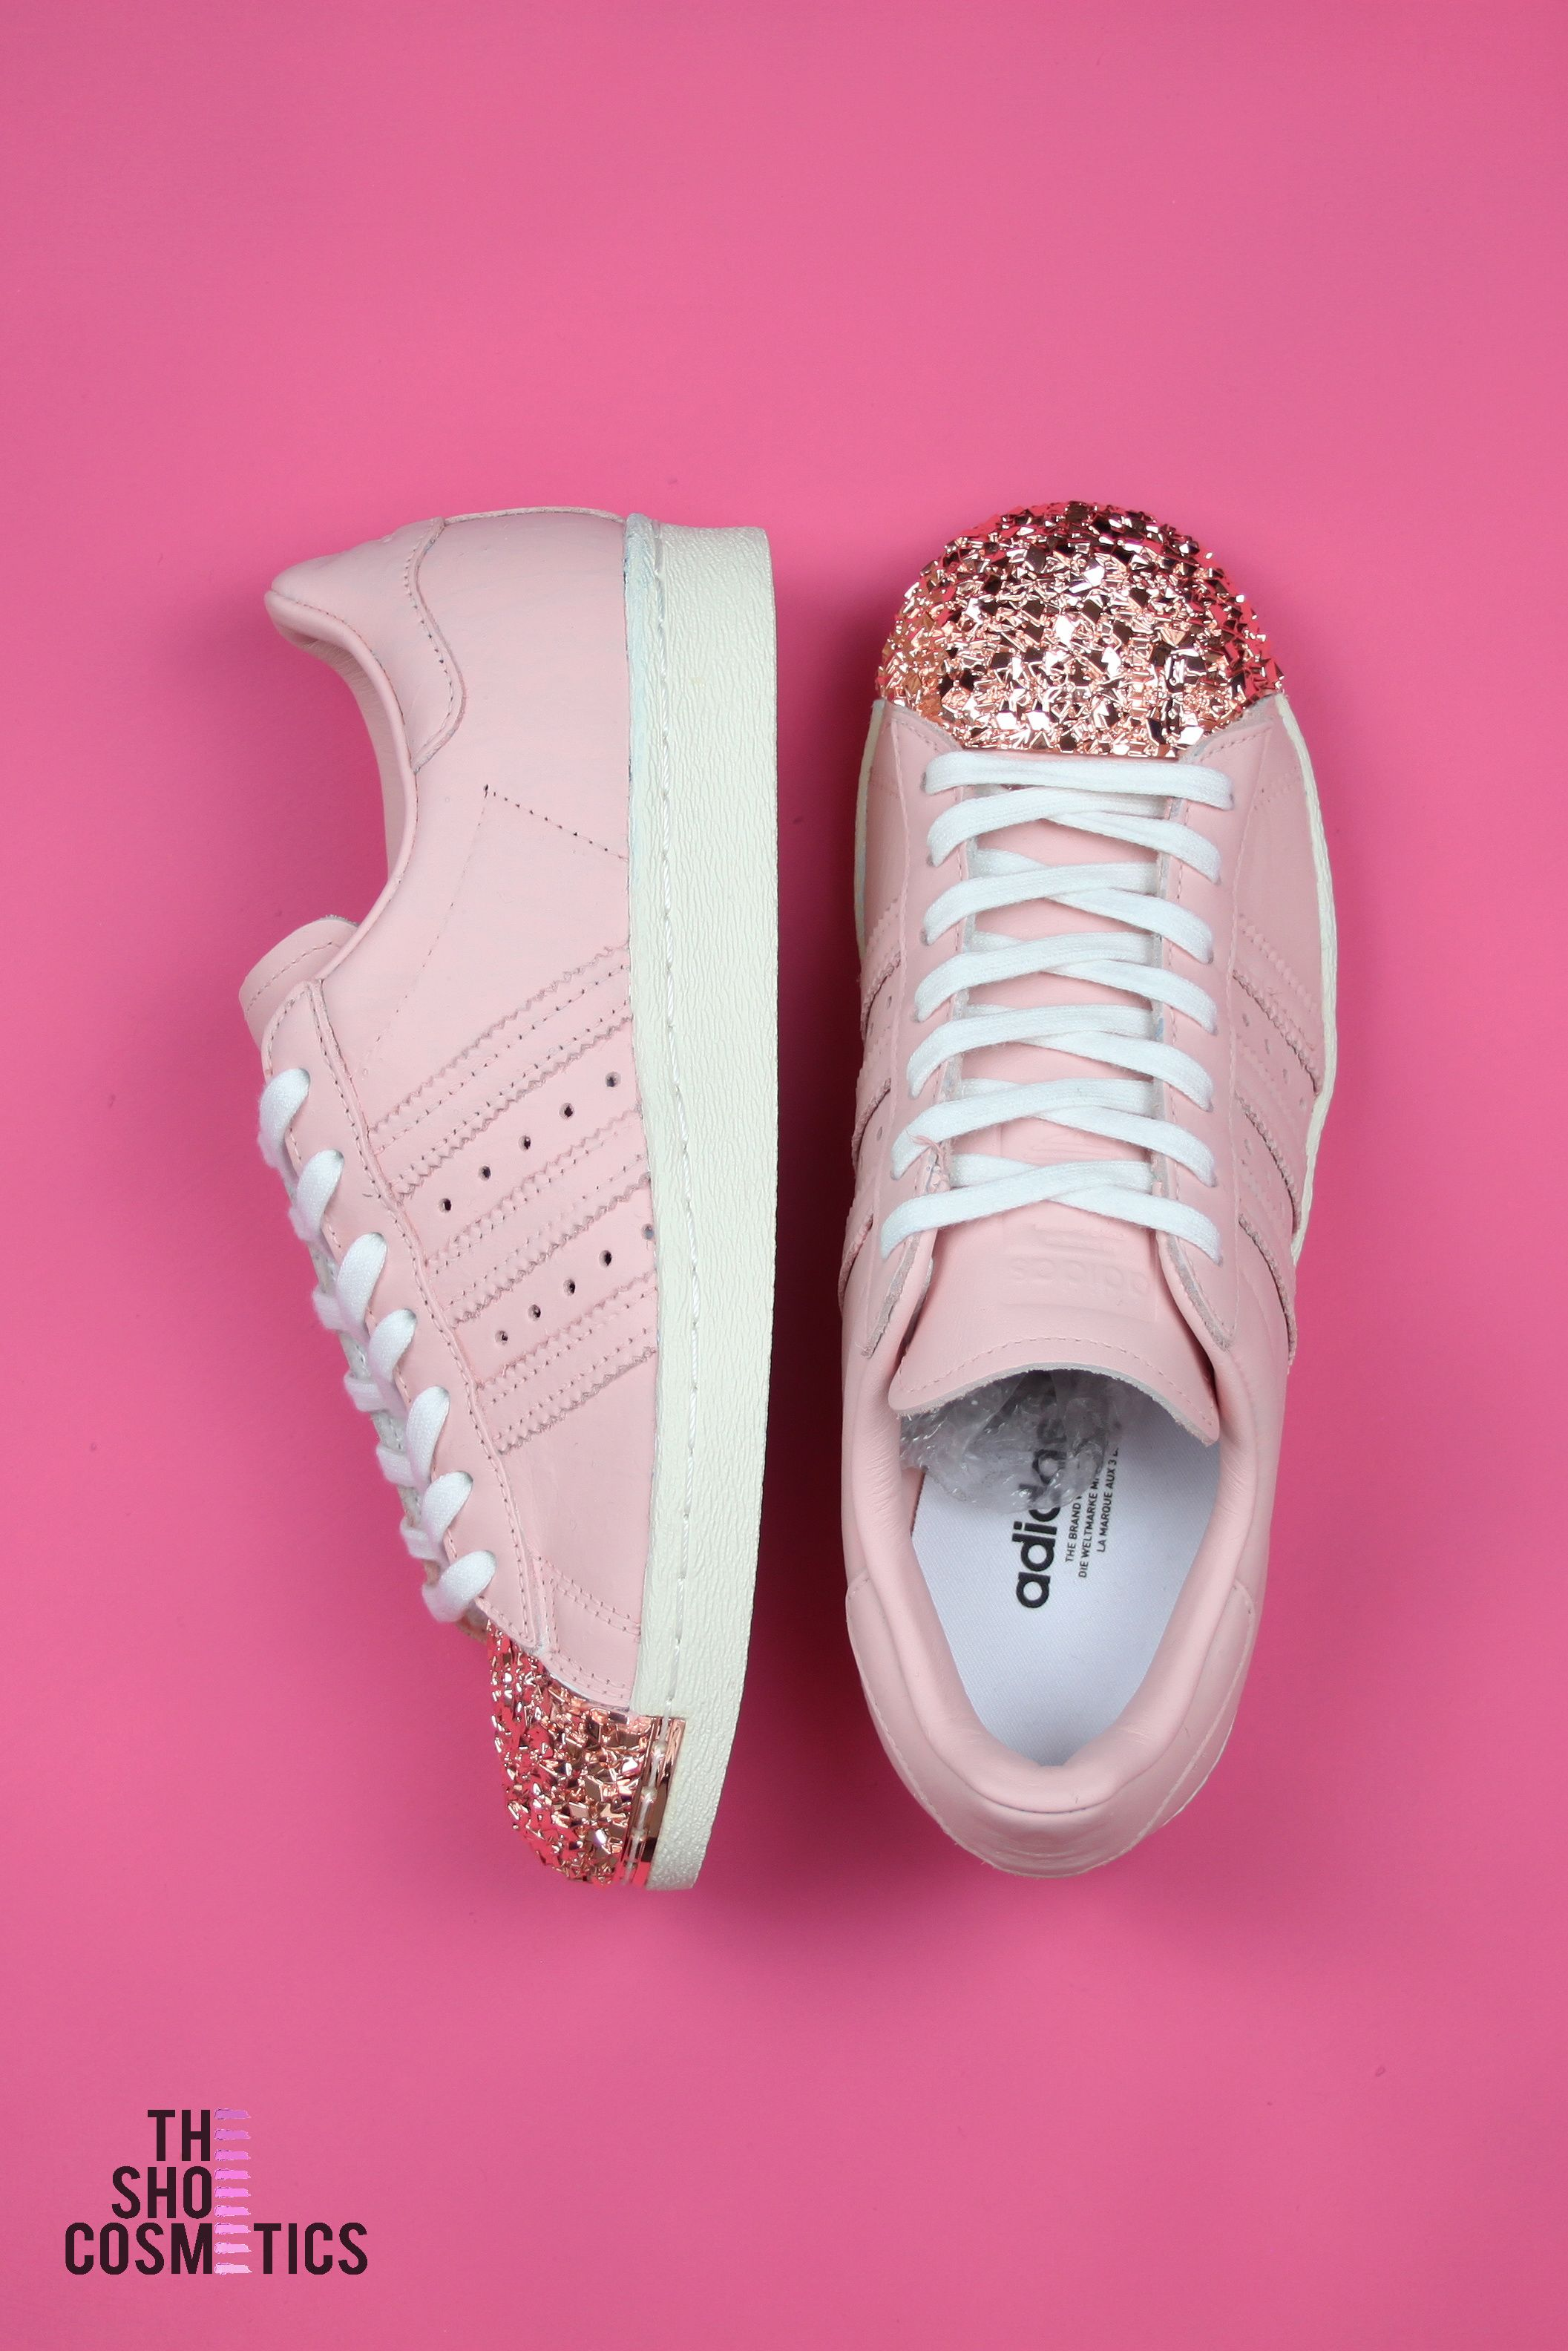 rose rosa d'oro adidas superstar rose d'oro adidas, dipinto